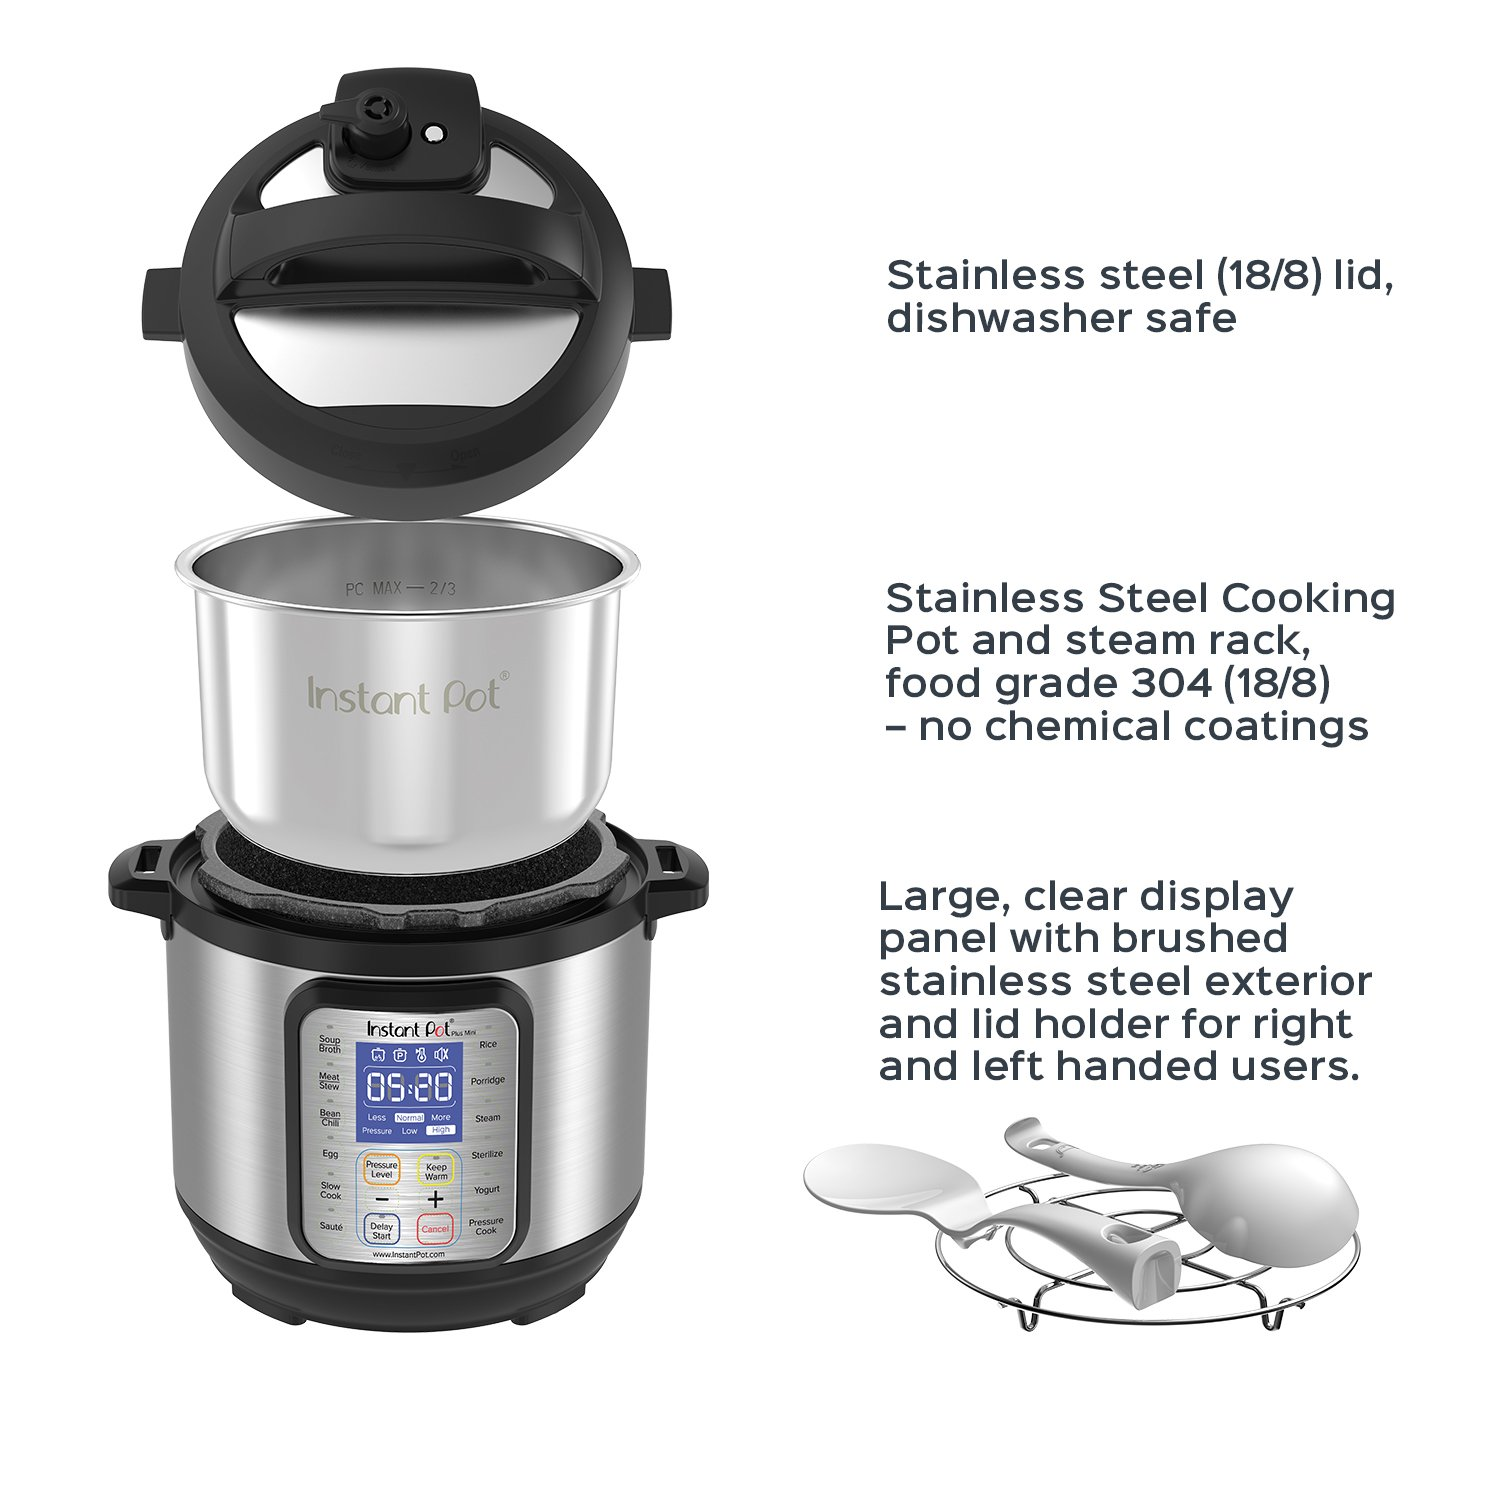 Instant Pot DUO Plus 3 Qt 9-in-1 Multi- Use Programmable Pressure Cooker, Slow Cooker, Rice Cooker, Yogurt Maker, Egg Cooker, Sauté, Steamer, Warmer, and Sterilizer by Instant Pot (Image #5)